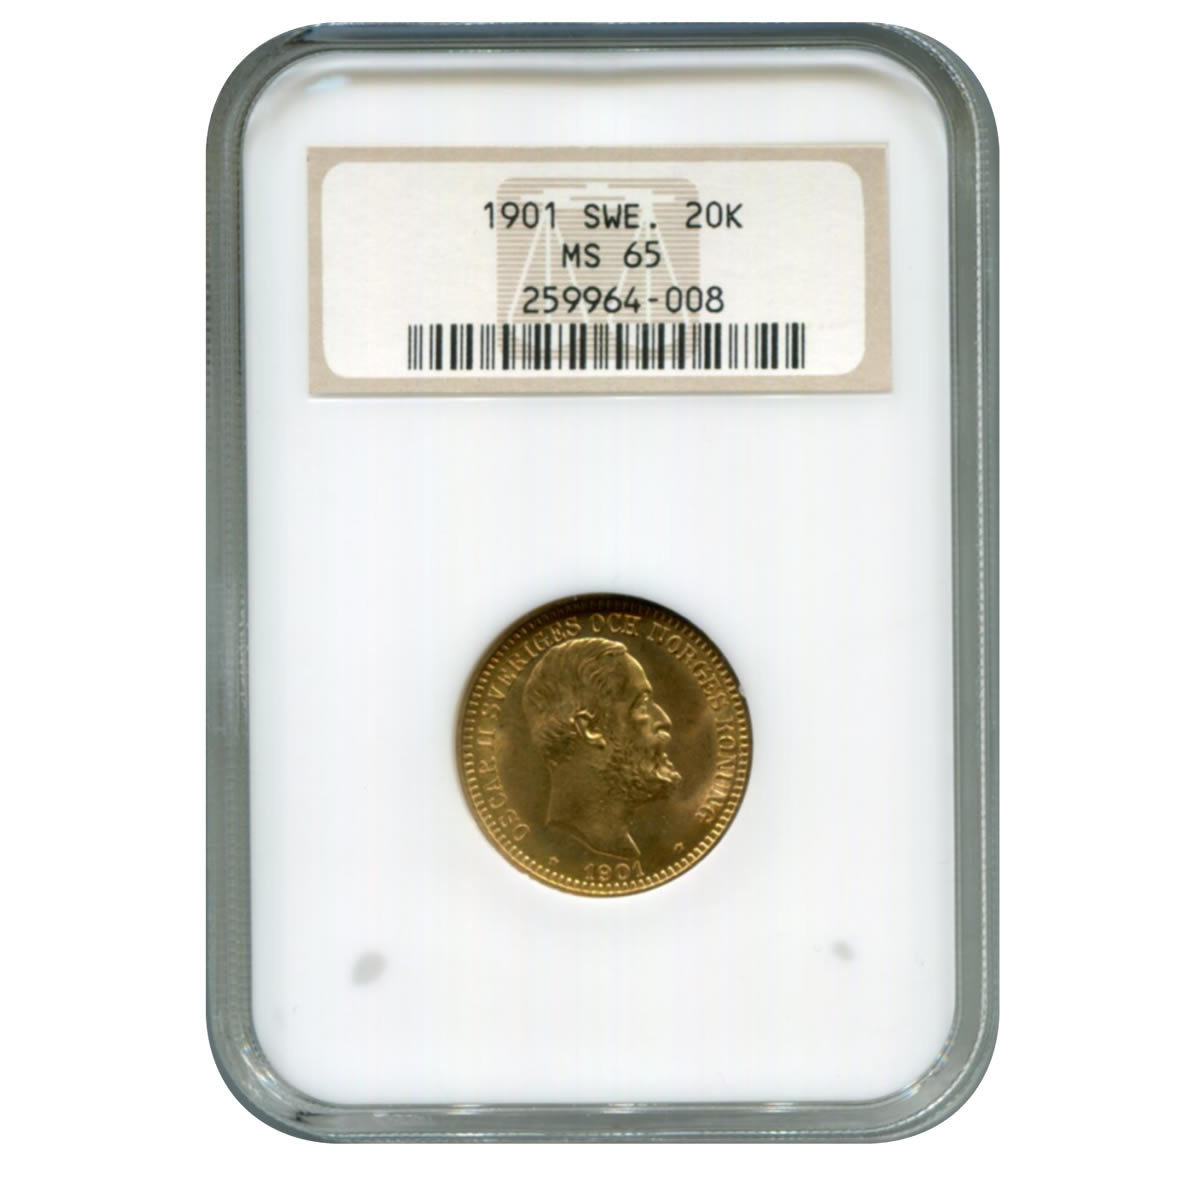 Sweden 20 kronor gold 1901 MS65 NGC